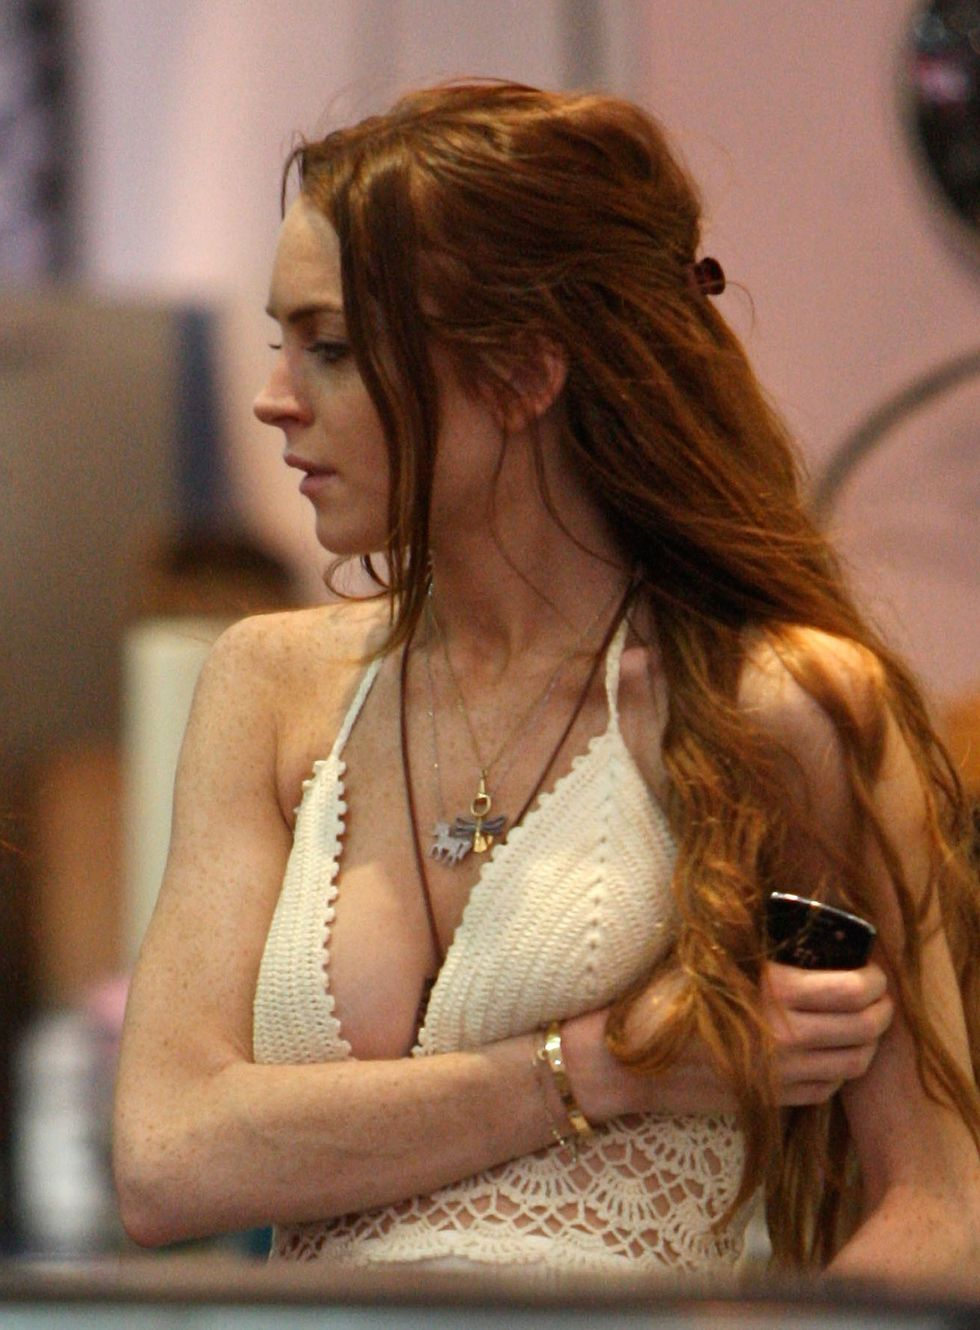 lindsay-lohan-candids-in-hollywood-01